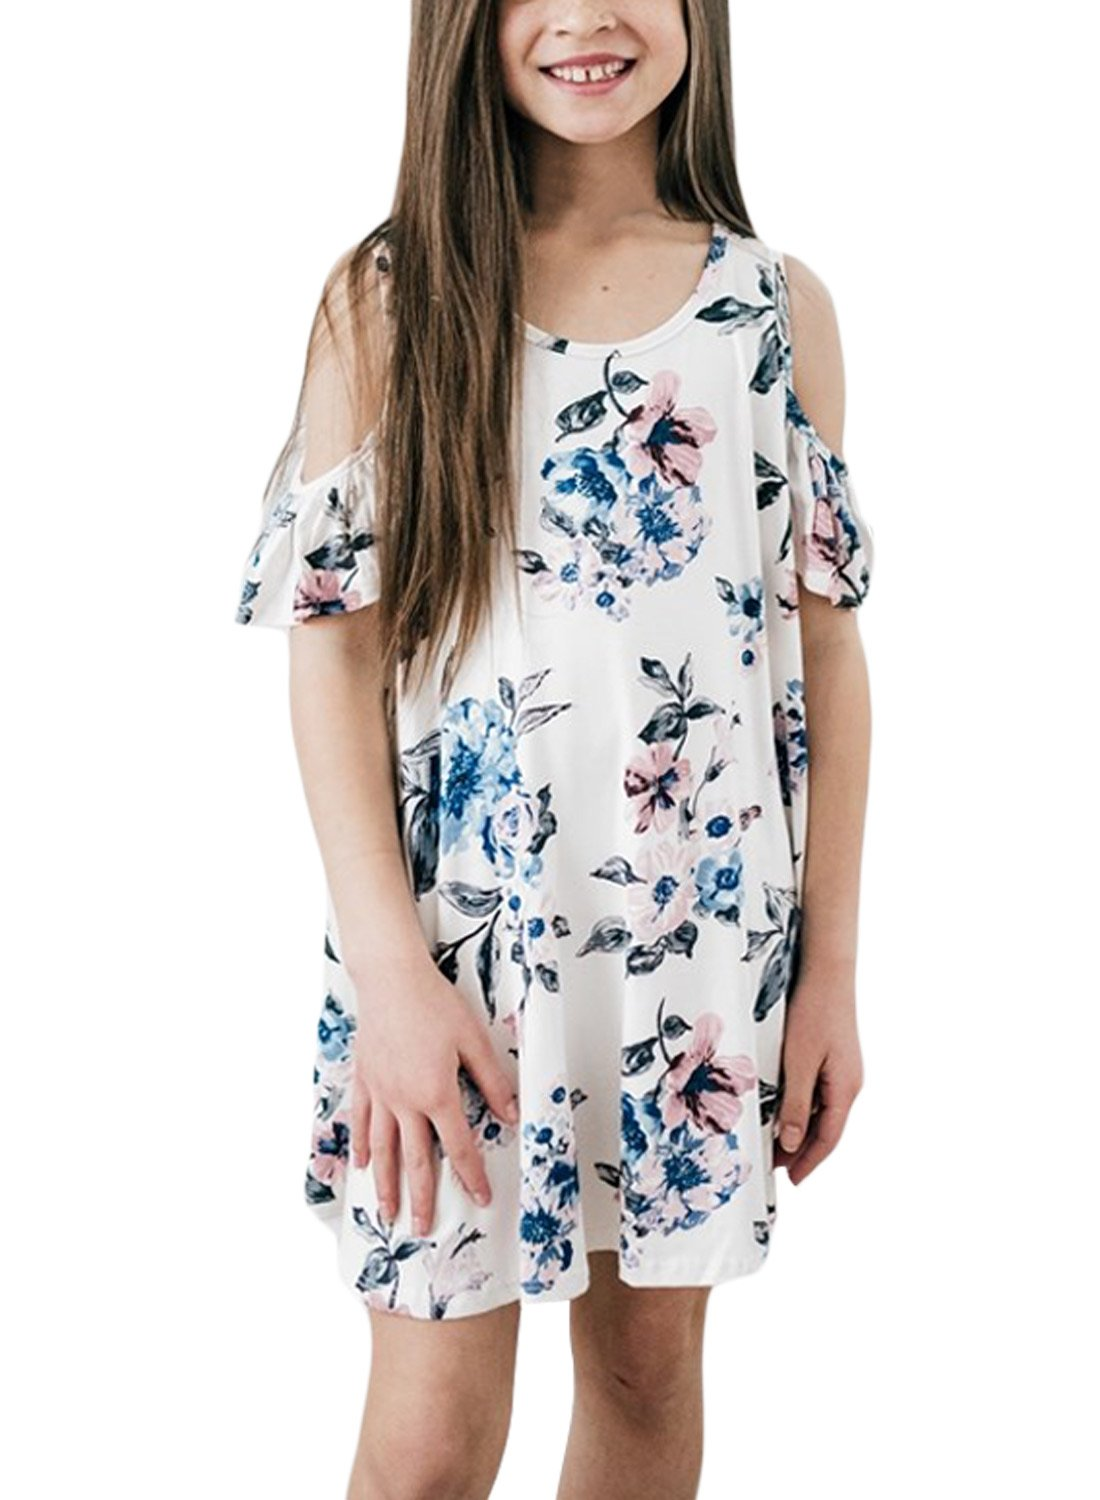 Diukia Girl's Little Kids Summer Floral Print Cotton Cold Shoulder Cute Casual Tunic Dress X-Large Size White